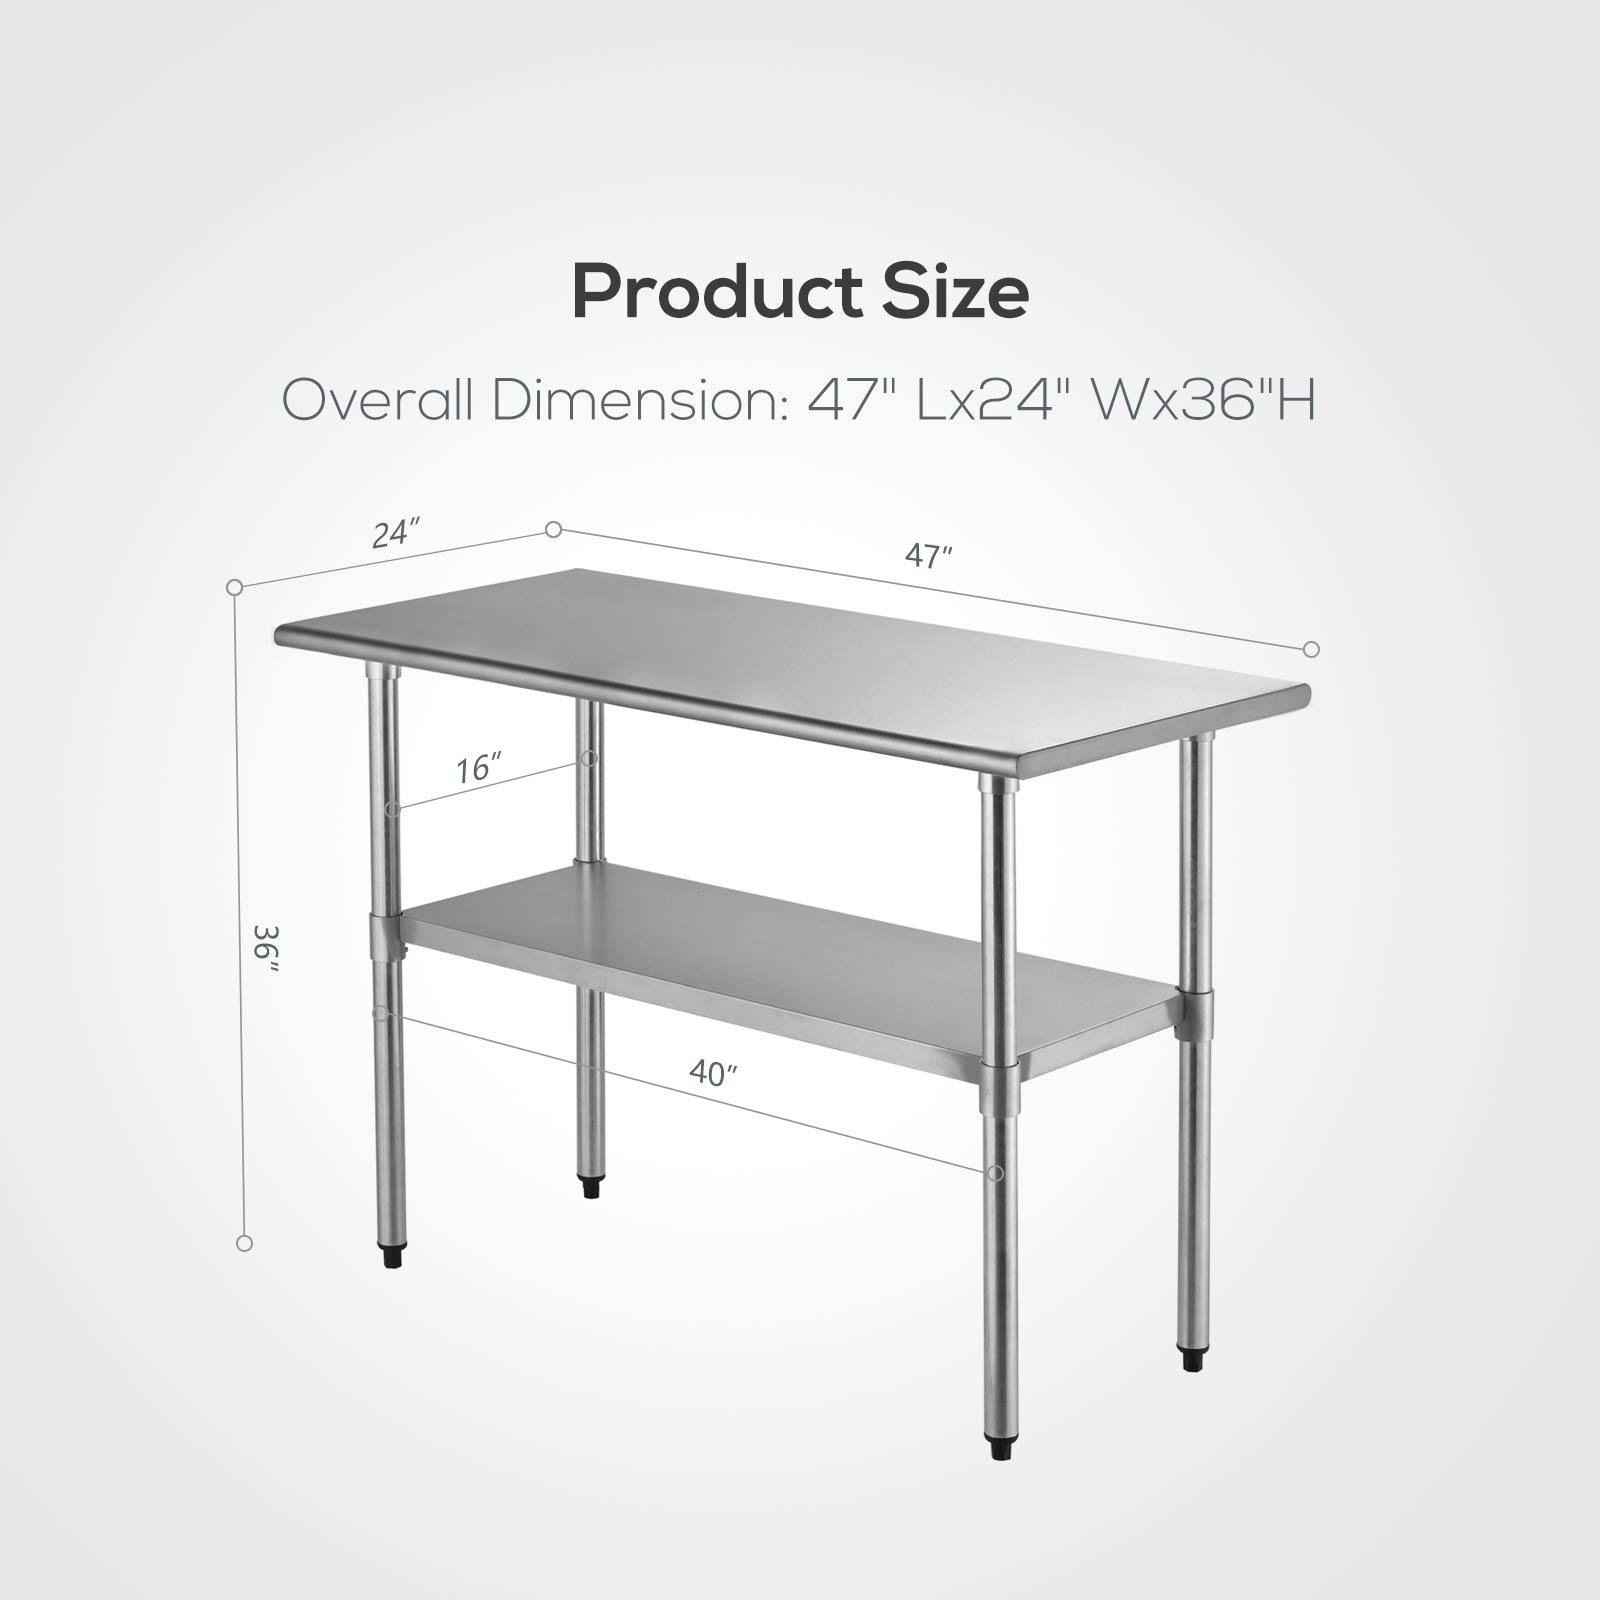 SUNCOO Commercial Stainless Steel Work Table Food Grade Kitchen Prep Workbench Metal Restaurant Countertop Workstation with Adjustable Undershelf 48 in Long x 24 in Deep by SUNCOO (Image #9)